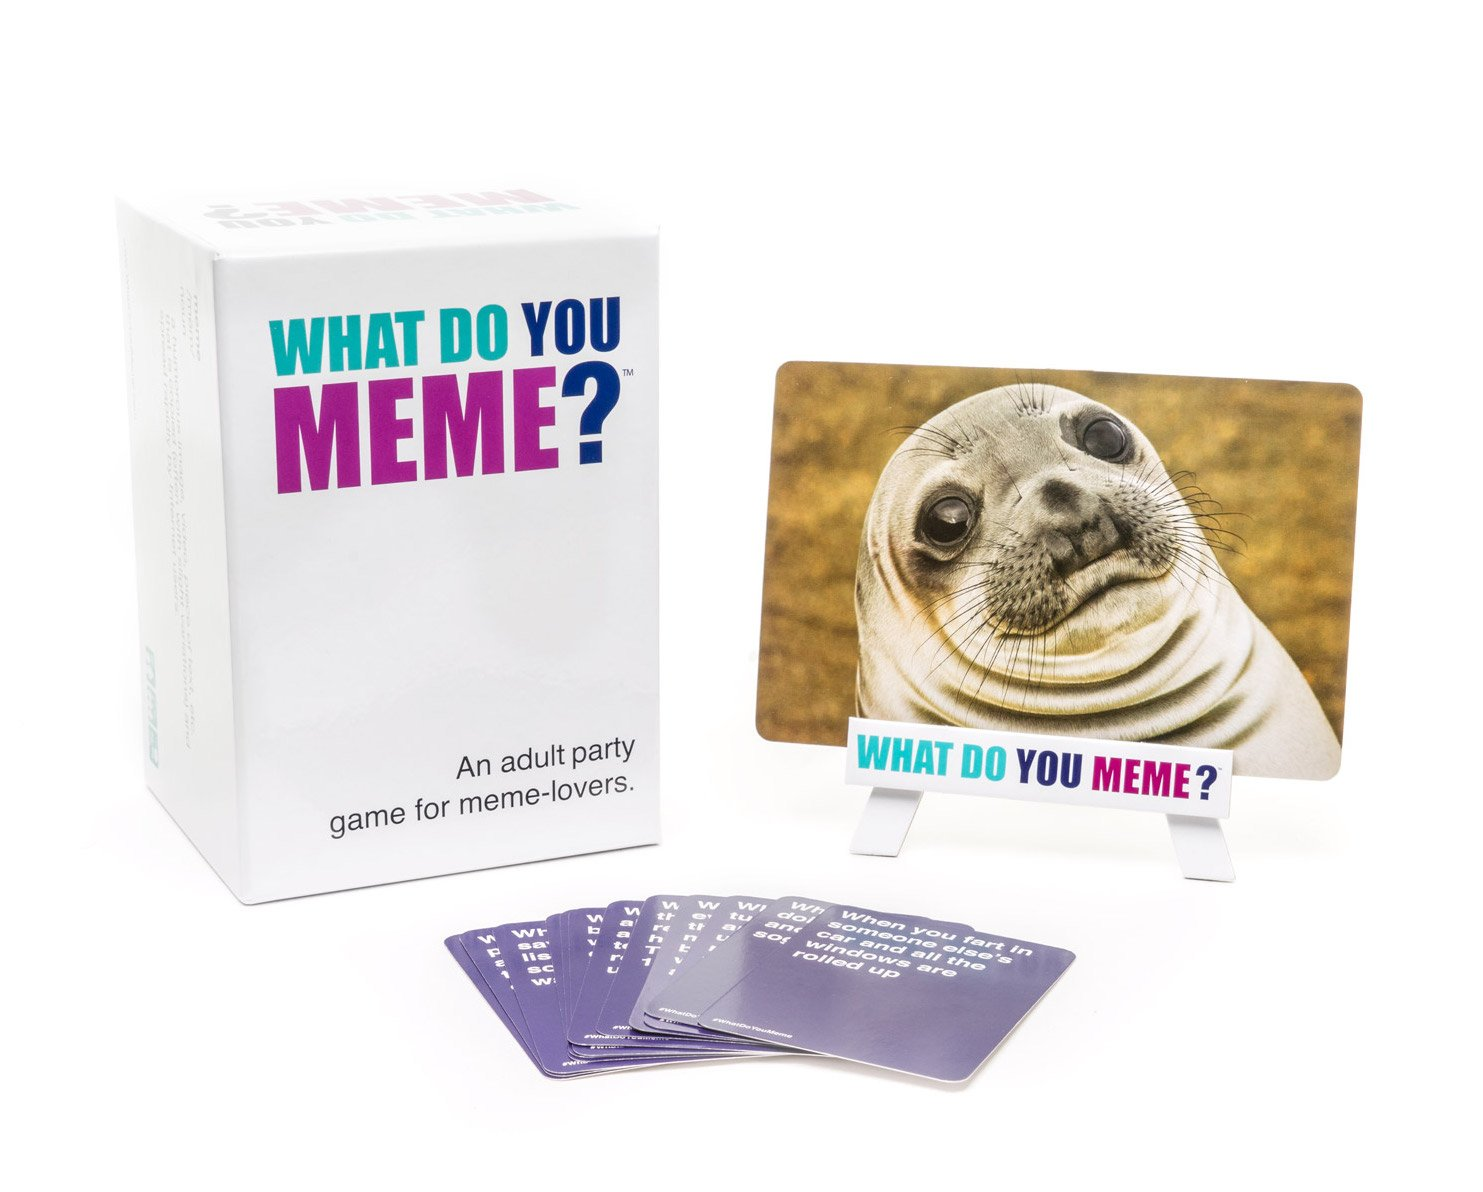 71lMhYvrjiL._SL1483_ amazon com what do you meme adult party game toys & games